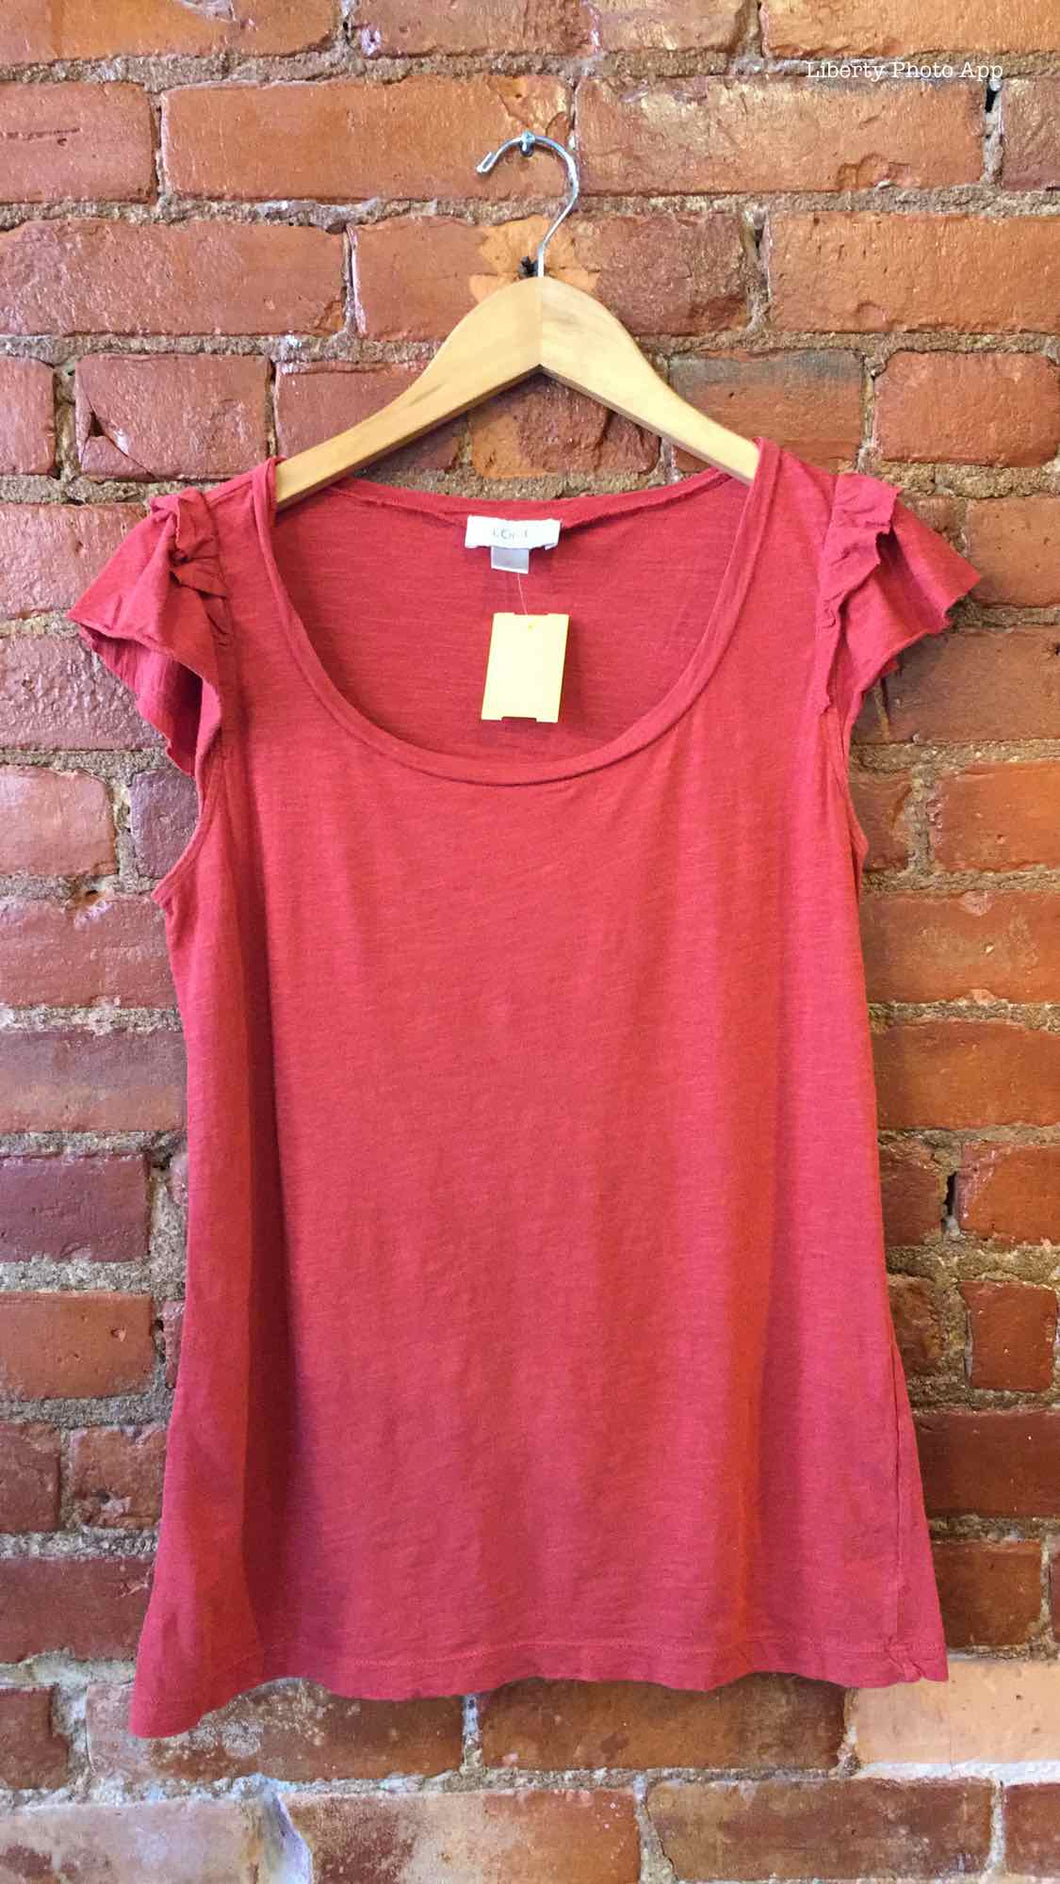 Ann Taylor LOFT Brick Size Medium T-shirt